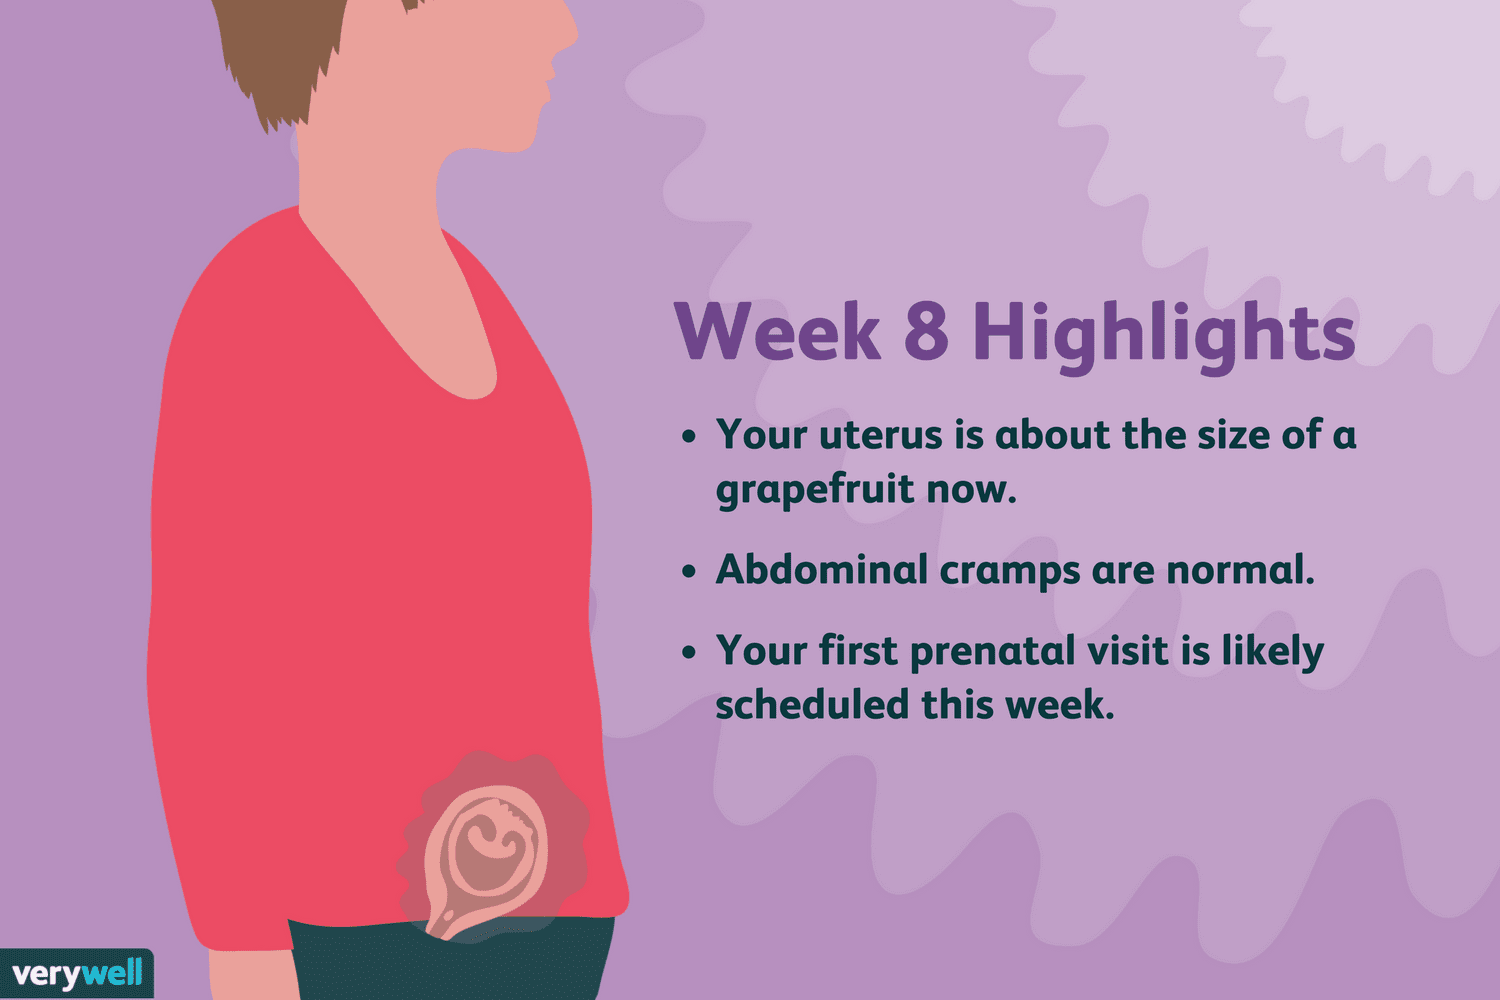 8 Weeks Pregnant: Symptoms, Baby Development, and More